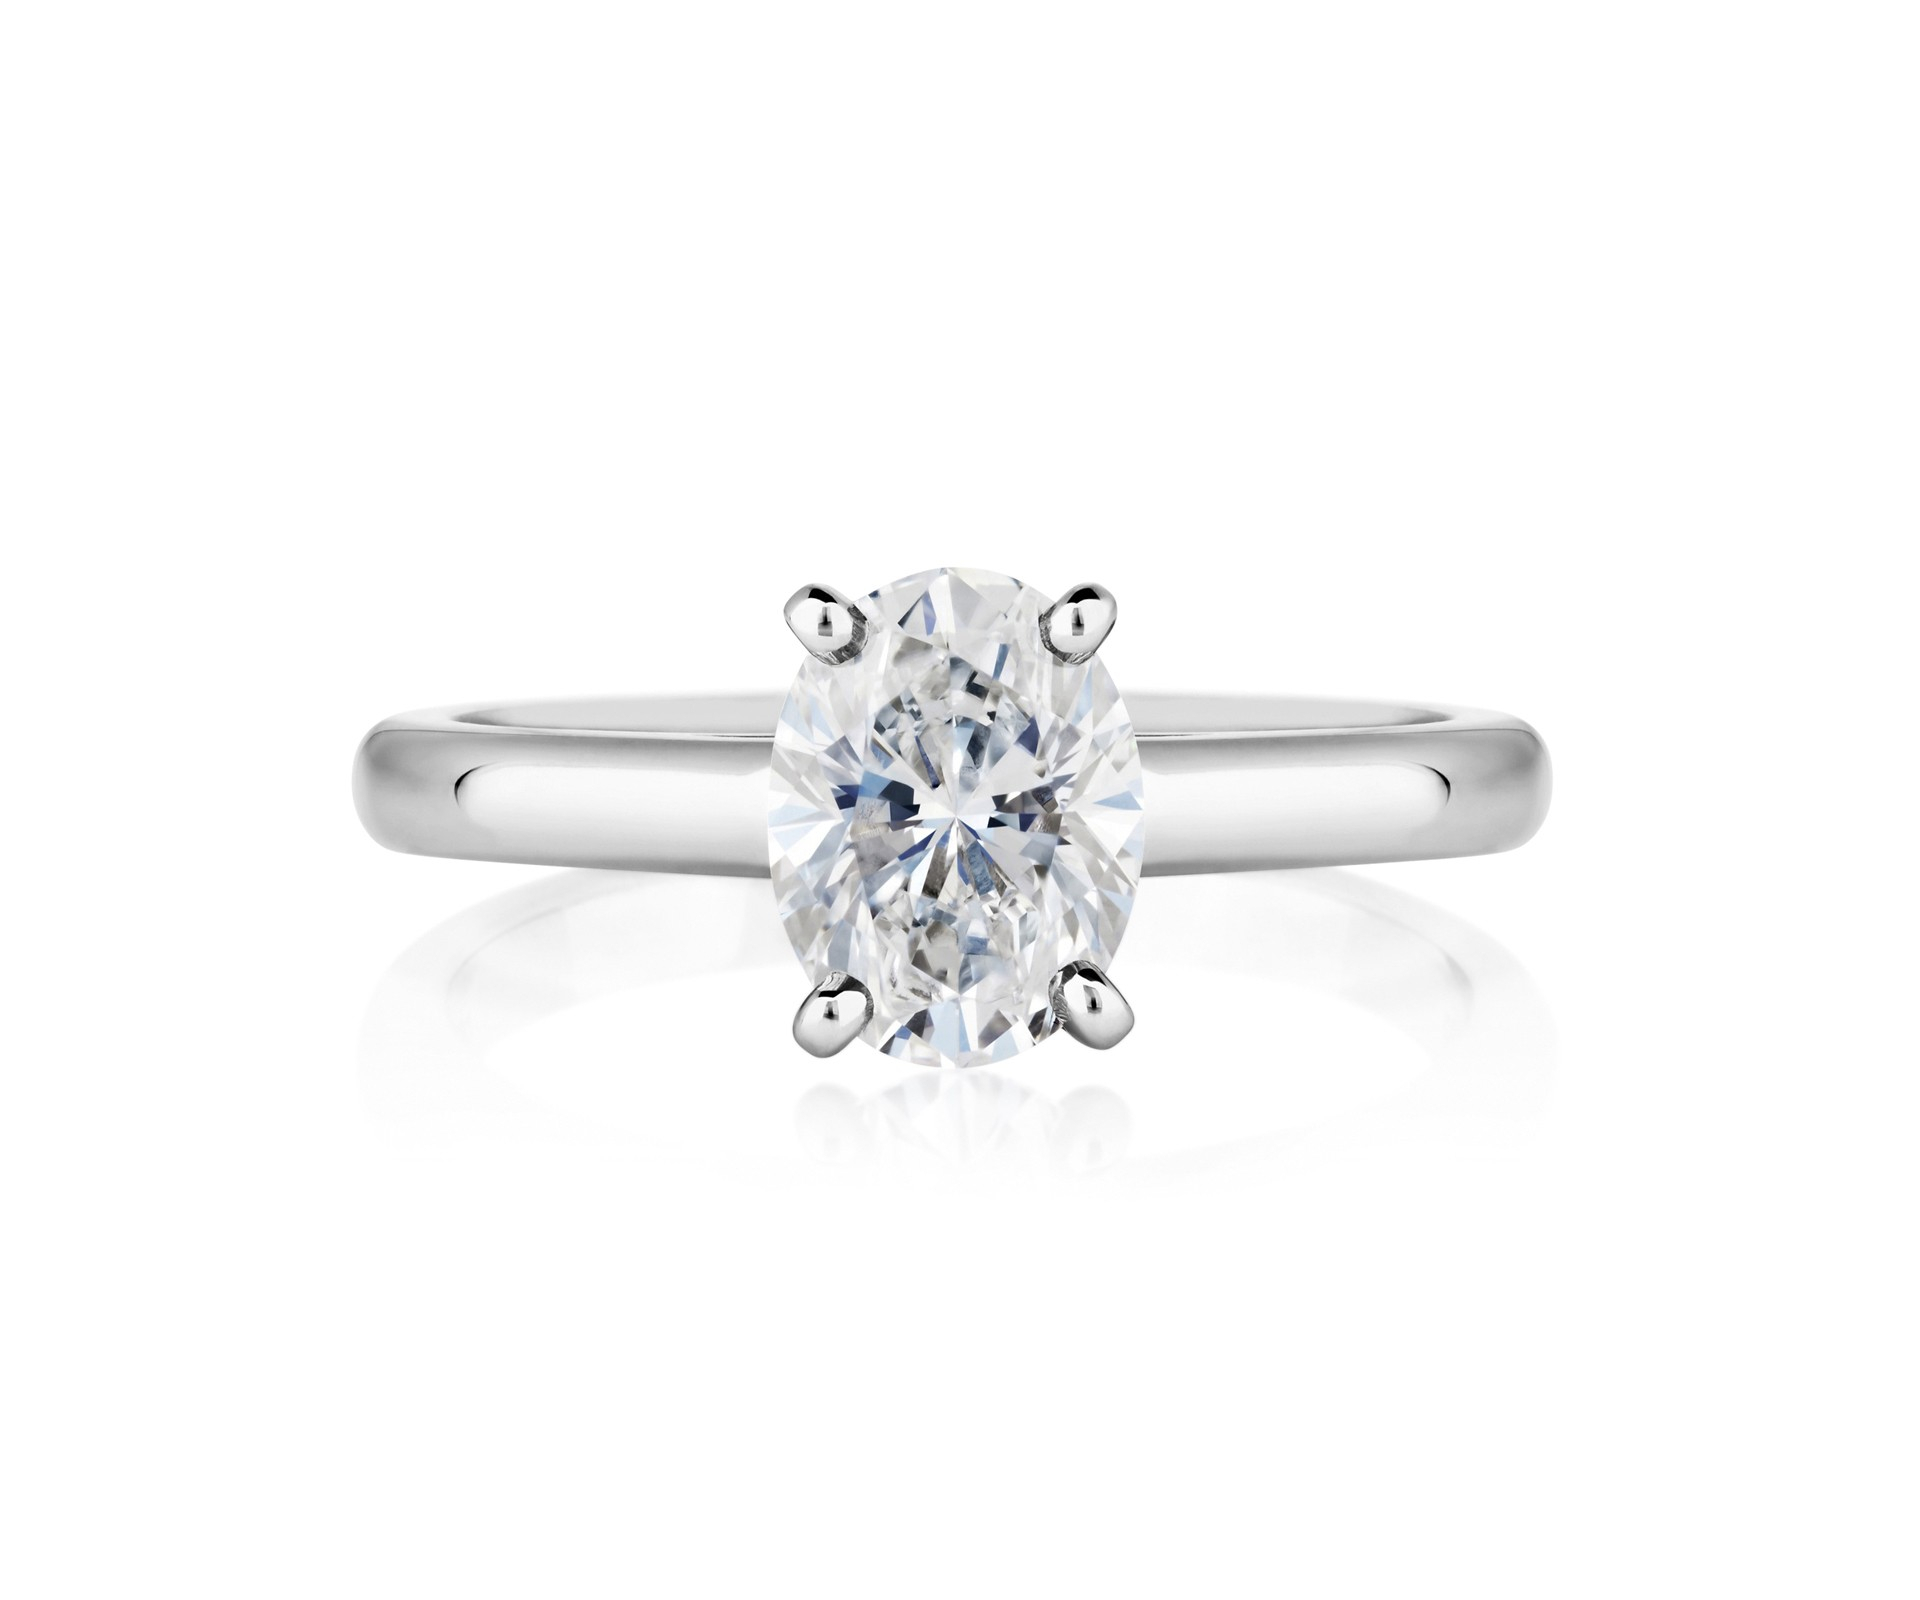 Db Classic Oval Cut Solitaire Ring Regarding Most Recent Prong Set Oval Shaped Diamond Wedding Bands (View 14 of 25)